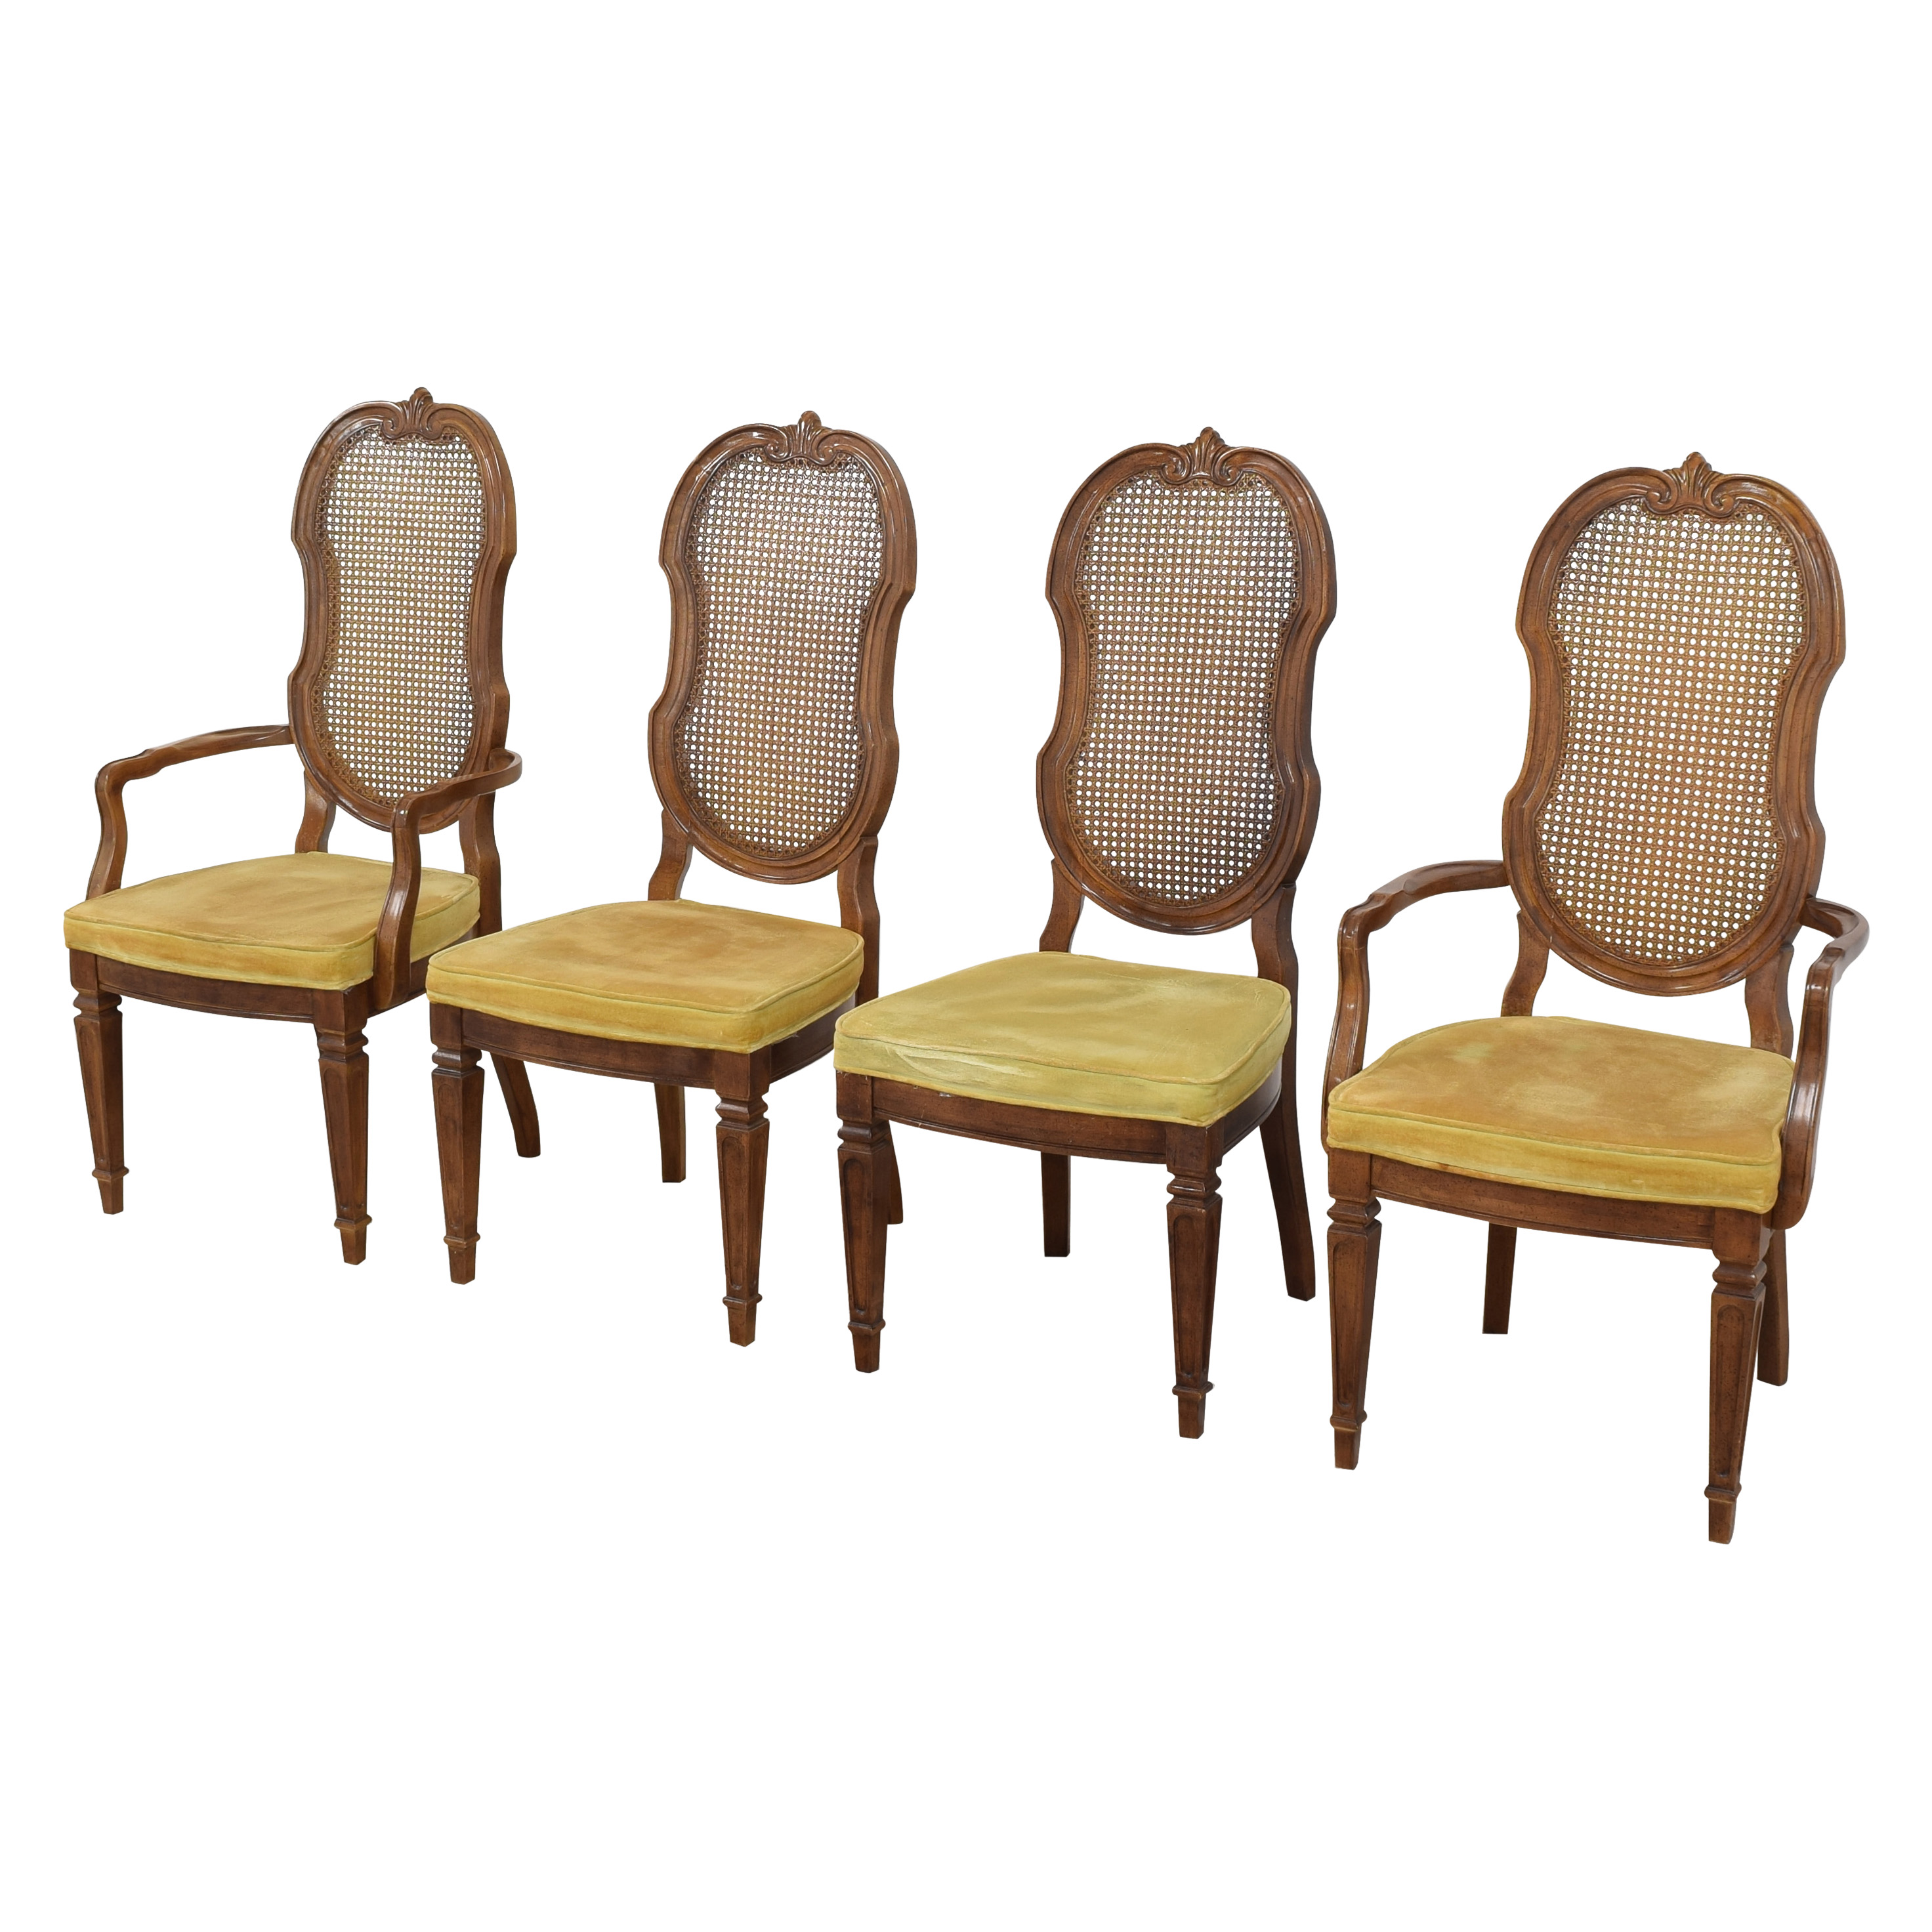 Thomasville Thomasville Italian Provincial Style Cane Back Dining Chairs on sale